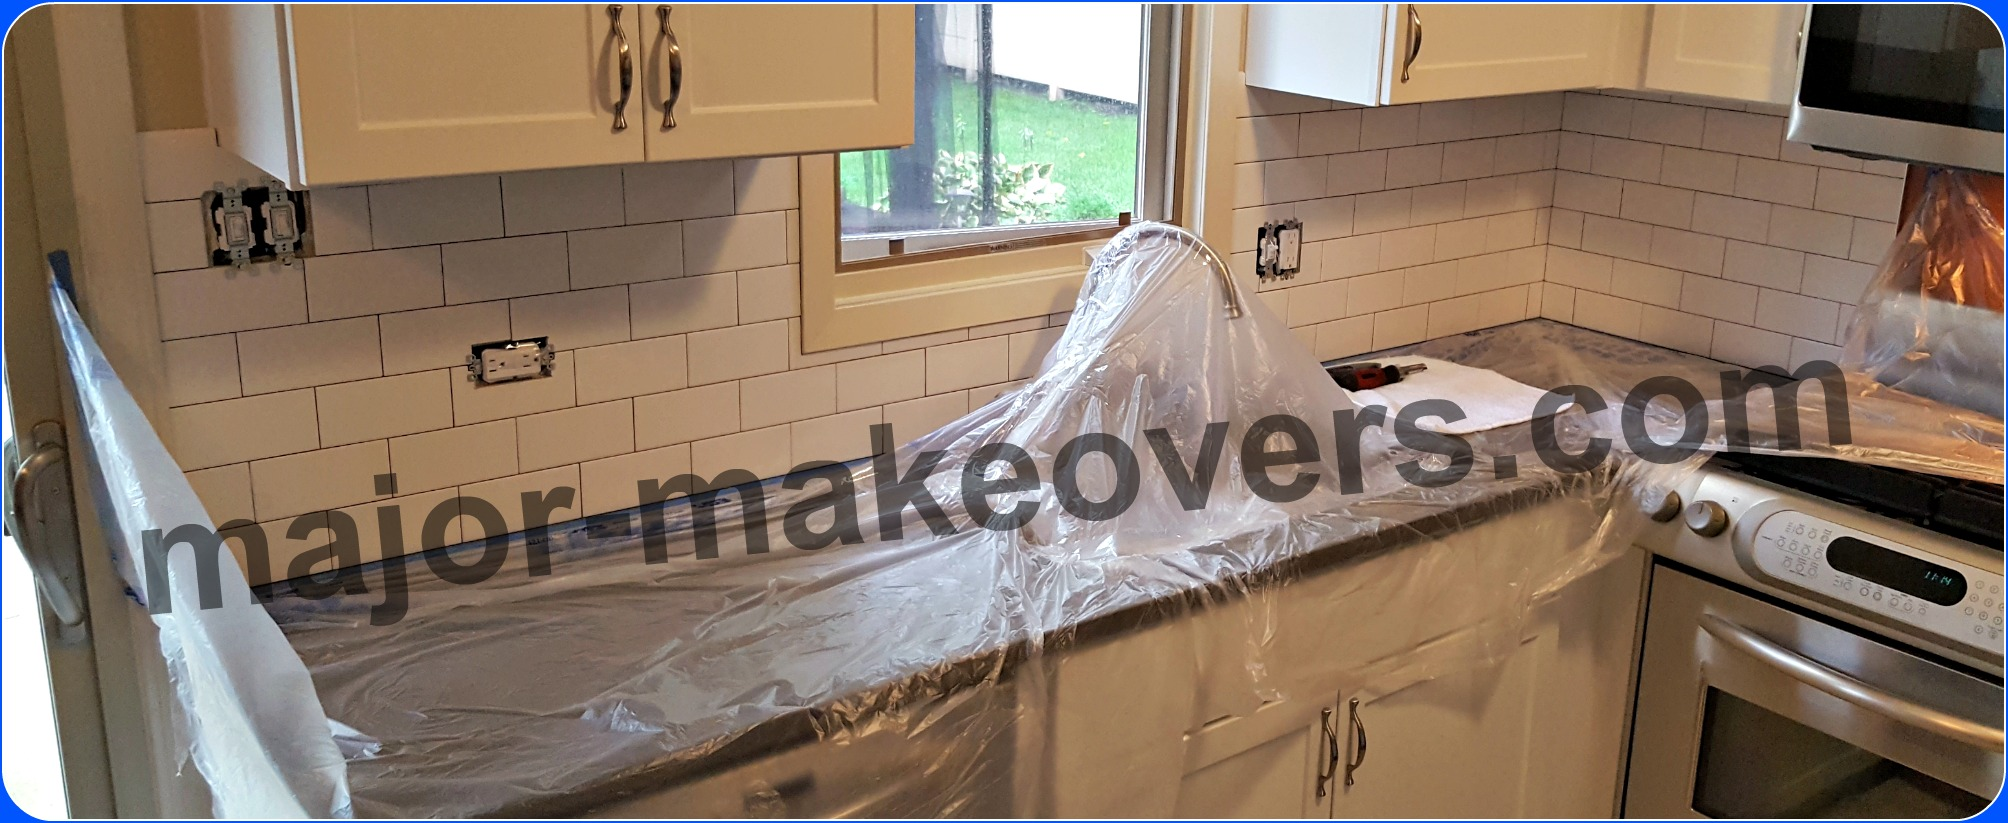 Backsplash tile ready for grouting while countertop, faucet and stove are protected by taped plastic sheets. Duct tape or similar, is placed on all switches and outlets.